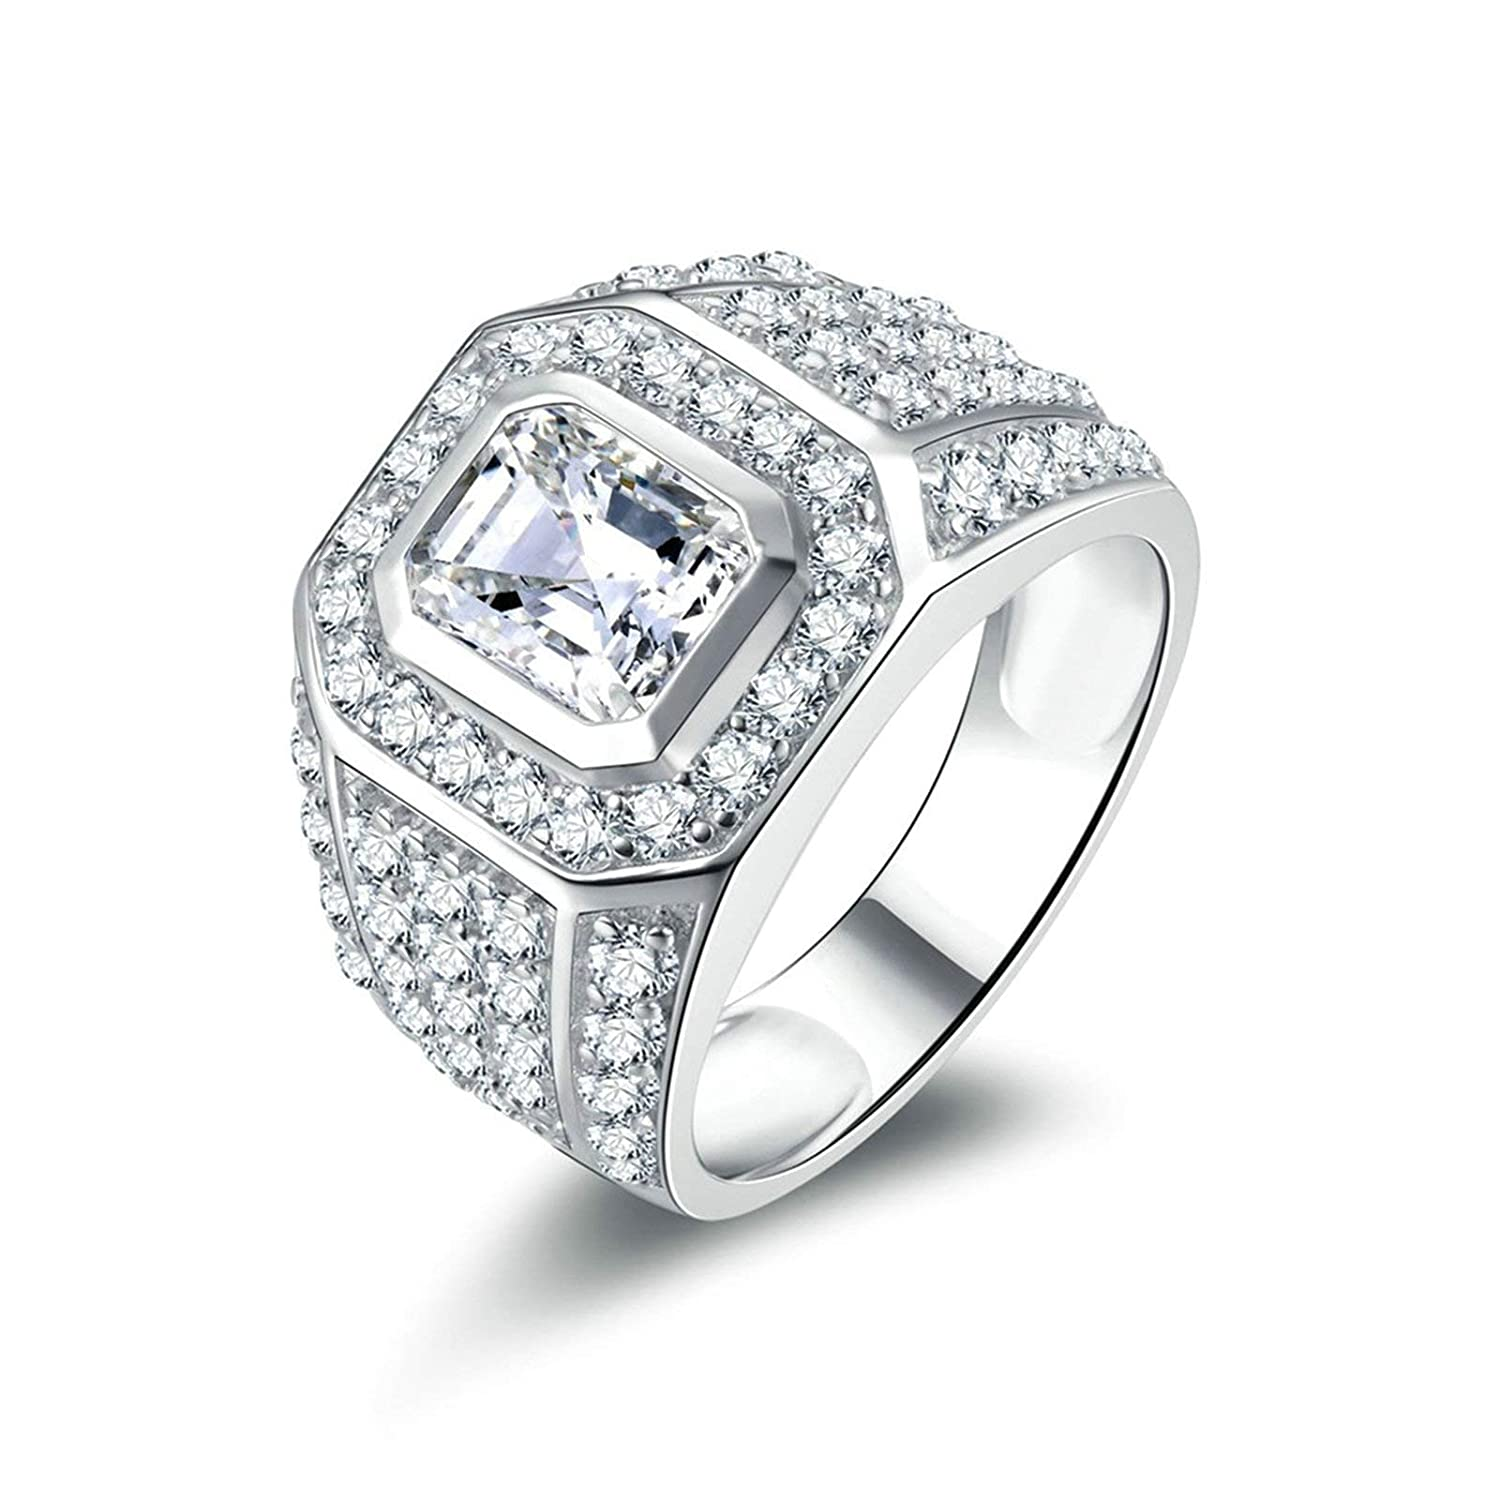 d2d83398de92b Aooaz Jewelry Wedding Ring Silver Material Women's Ring Square Ring ...